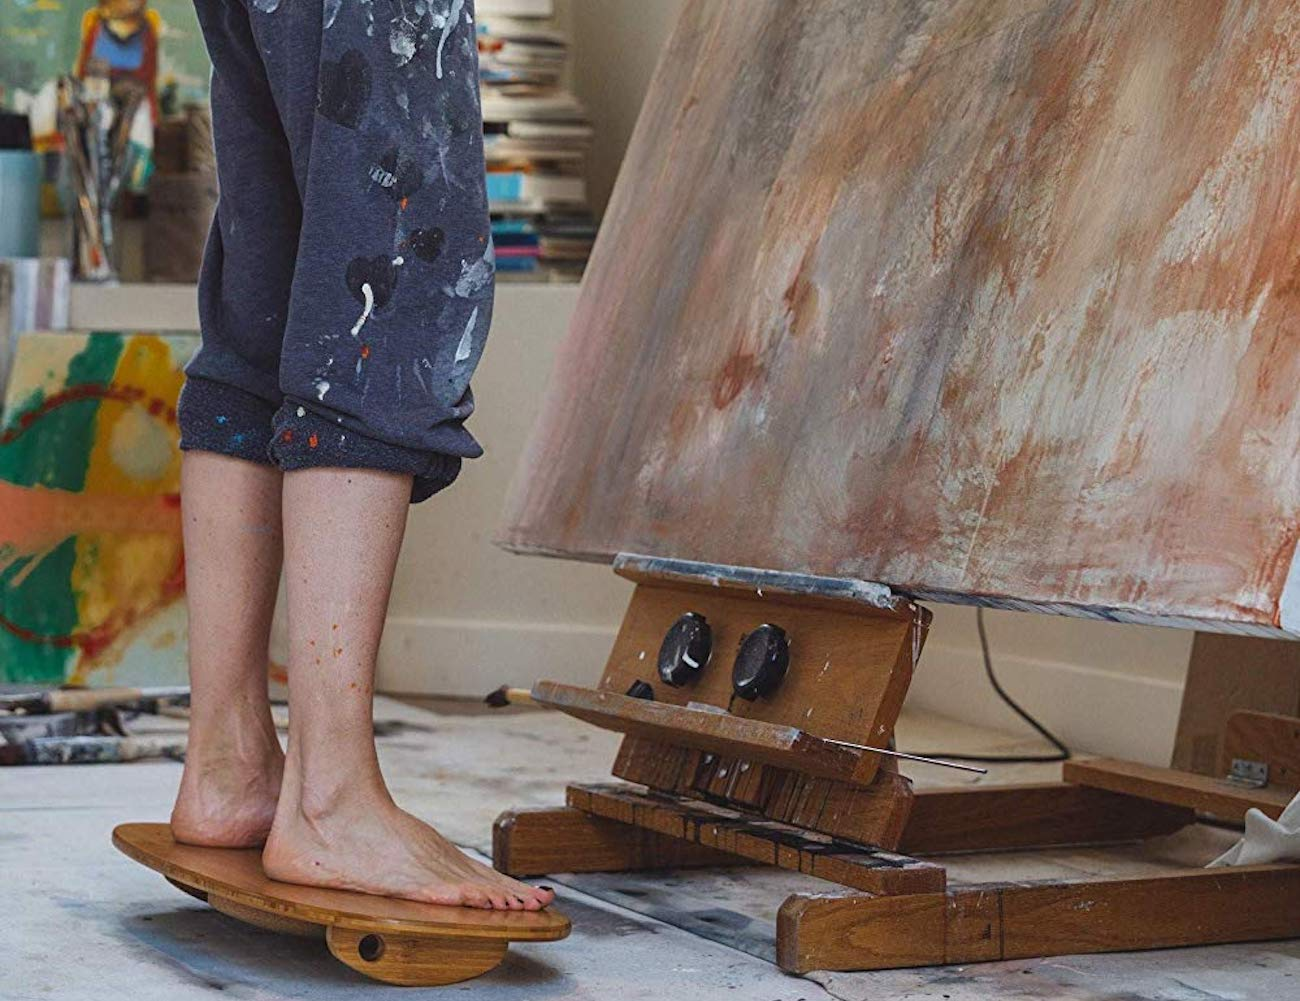 EBB + FLO Wooden Surfing Standing Desk Board will help you burn calories while you work